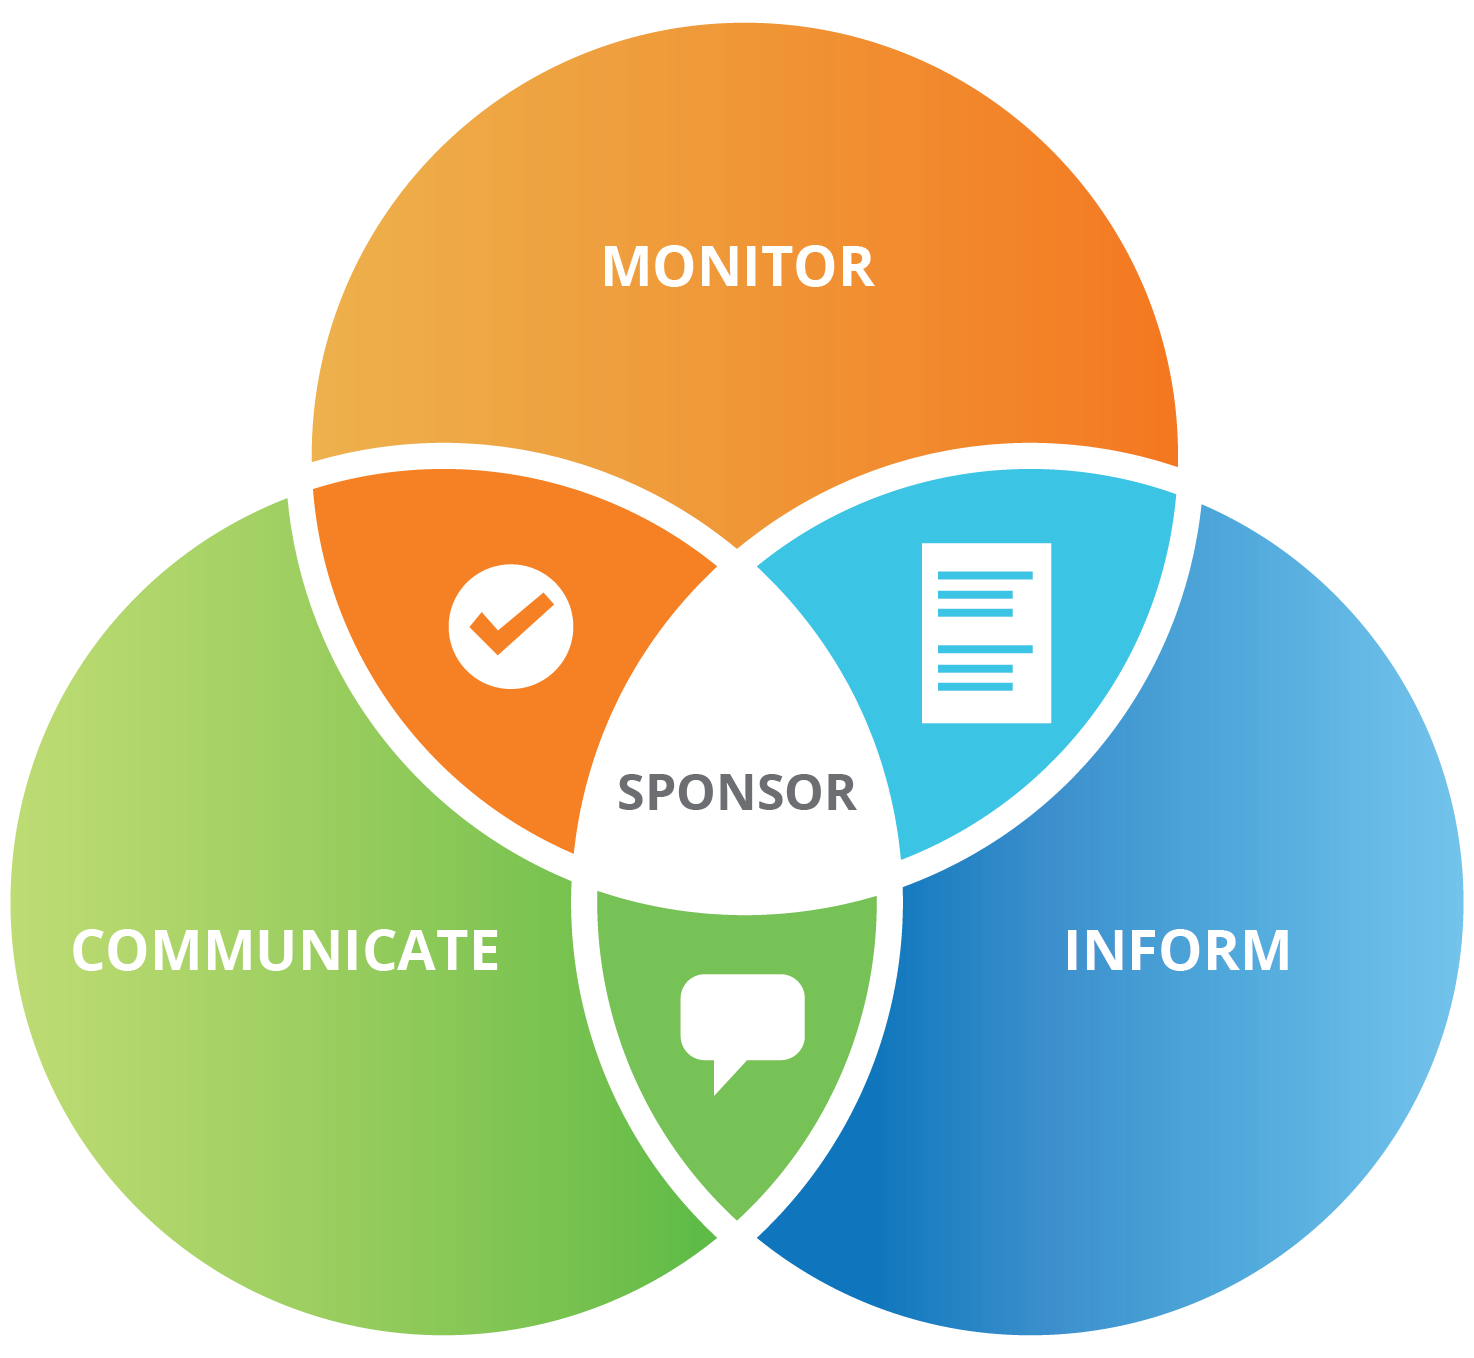 Relationship chart shows we monitor, inform and communicate with the sponsor.